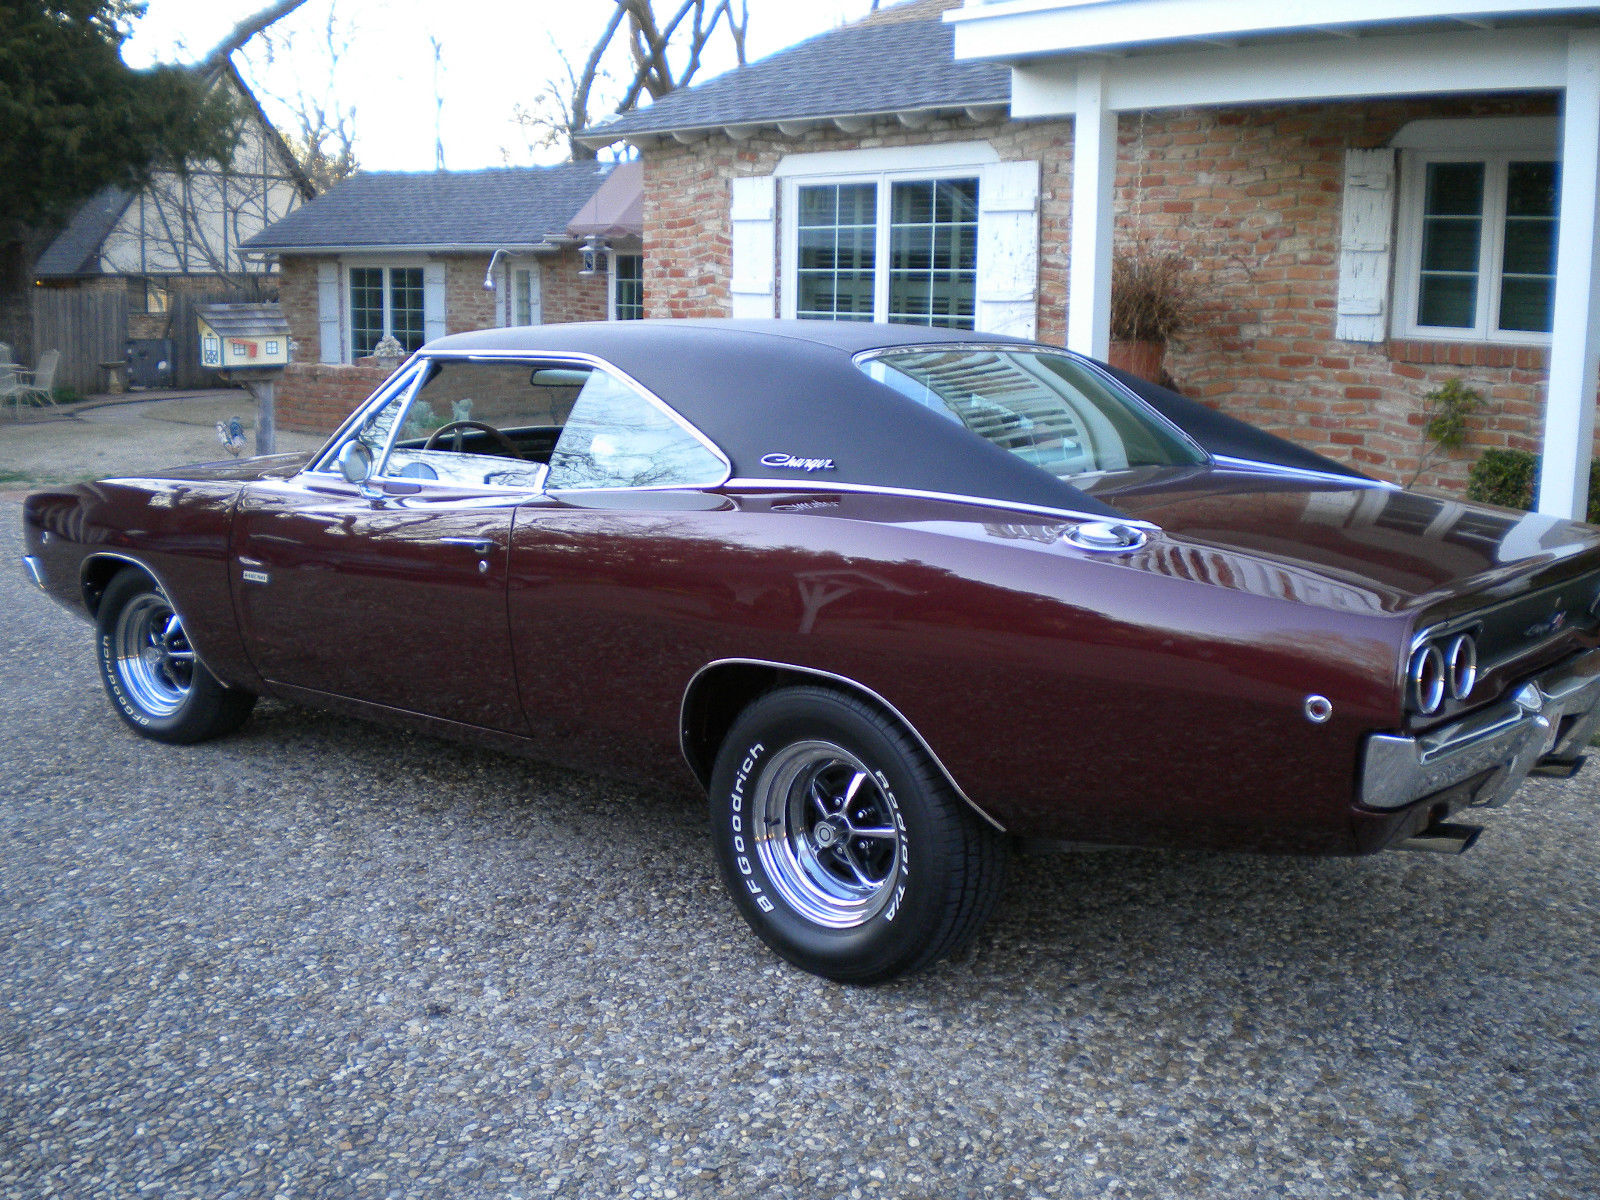 1968 426 hemi dodge charger r t export car authenticated j code classic dodge charger 1968 for. Black Bedroom Furniture Sets. Home Design Ideas